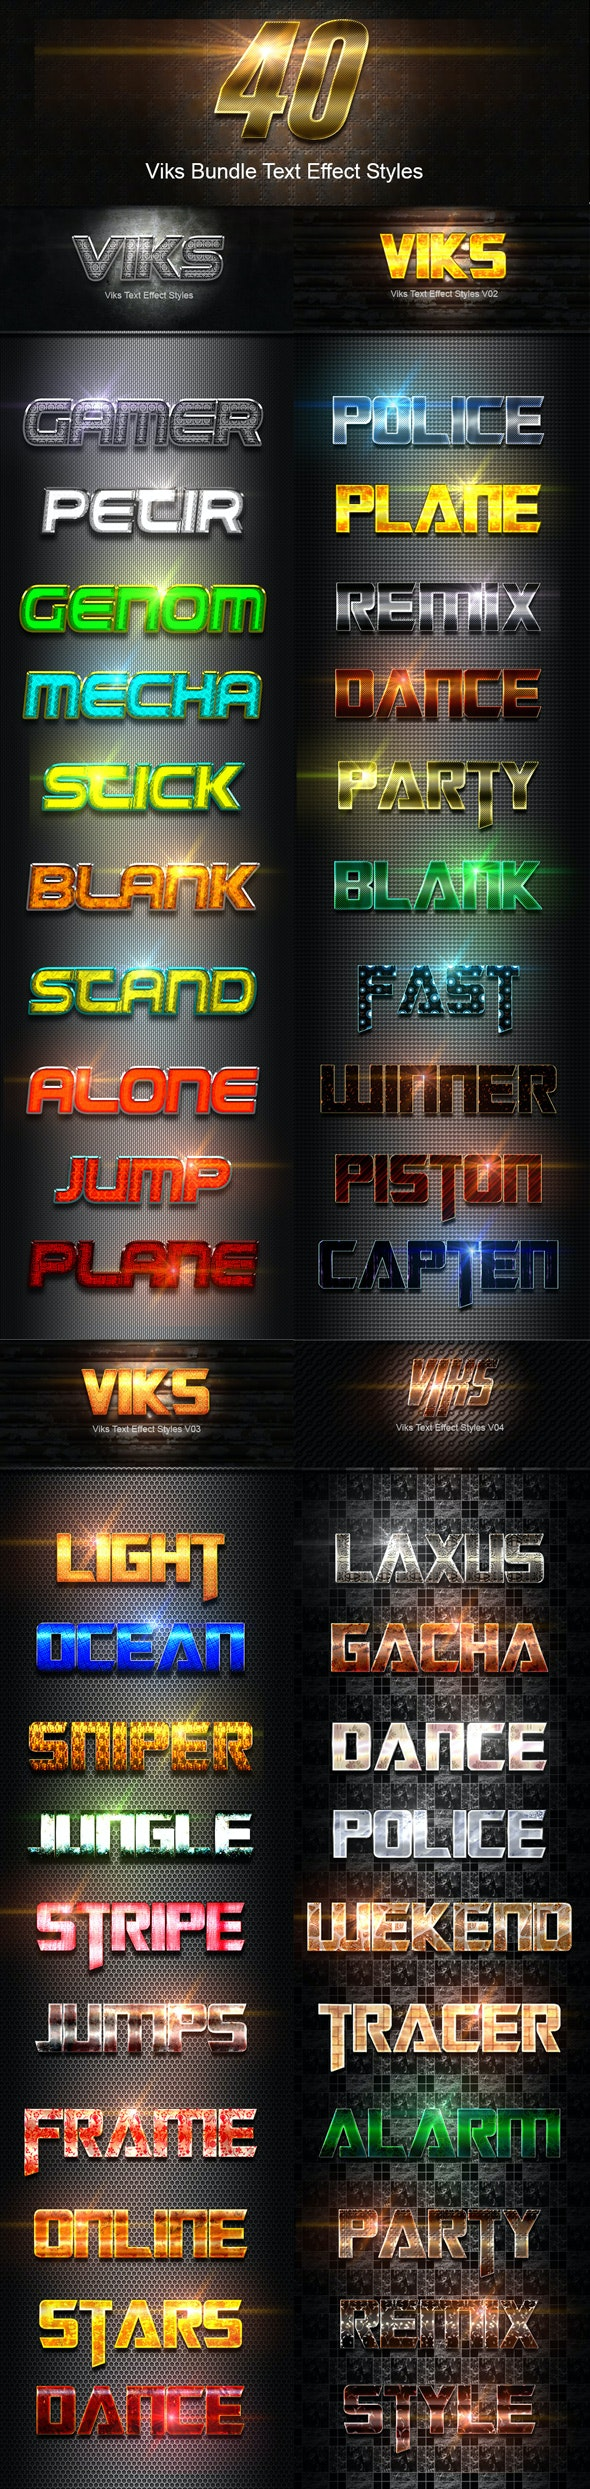 40 Viks Bundle Text Effect Styles - Text Effects Styles